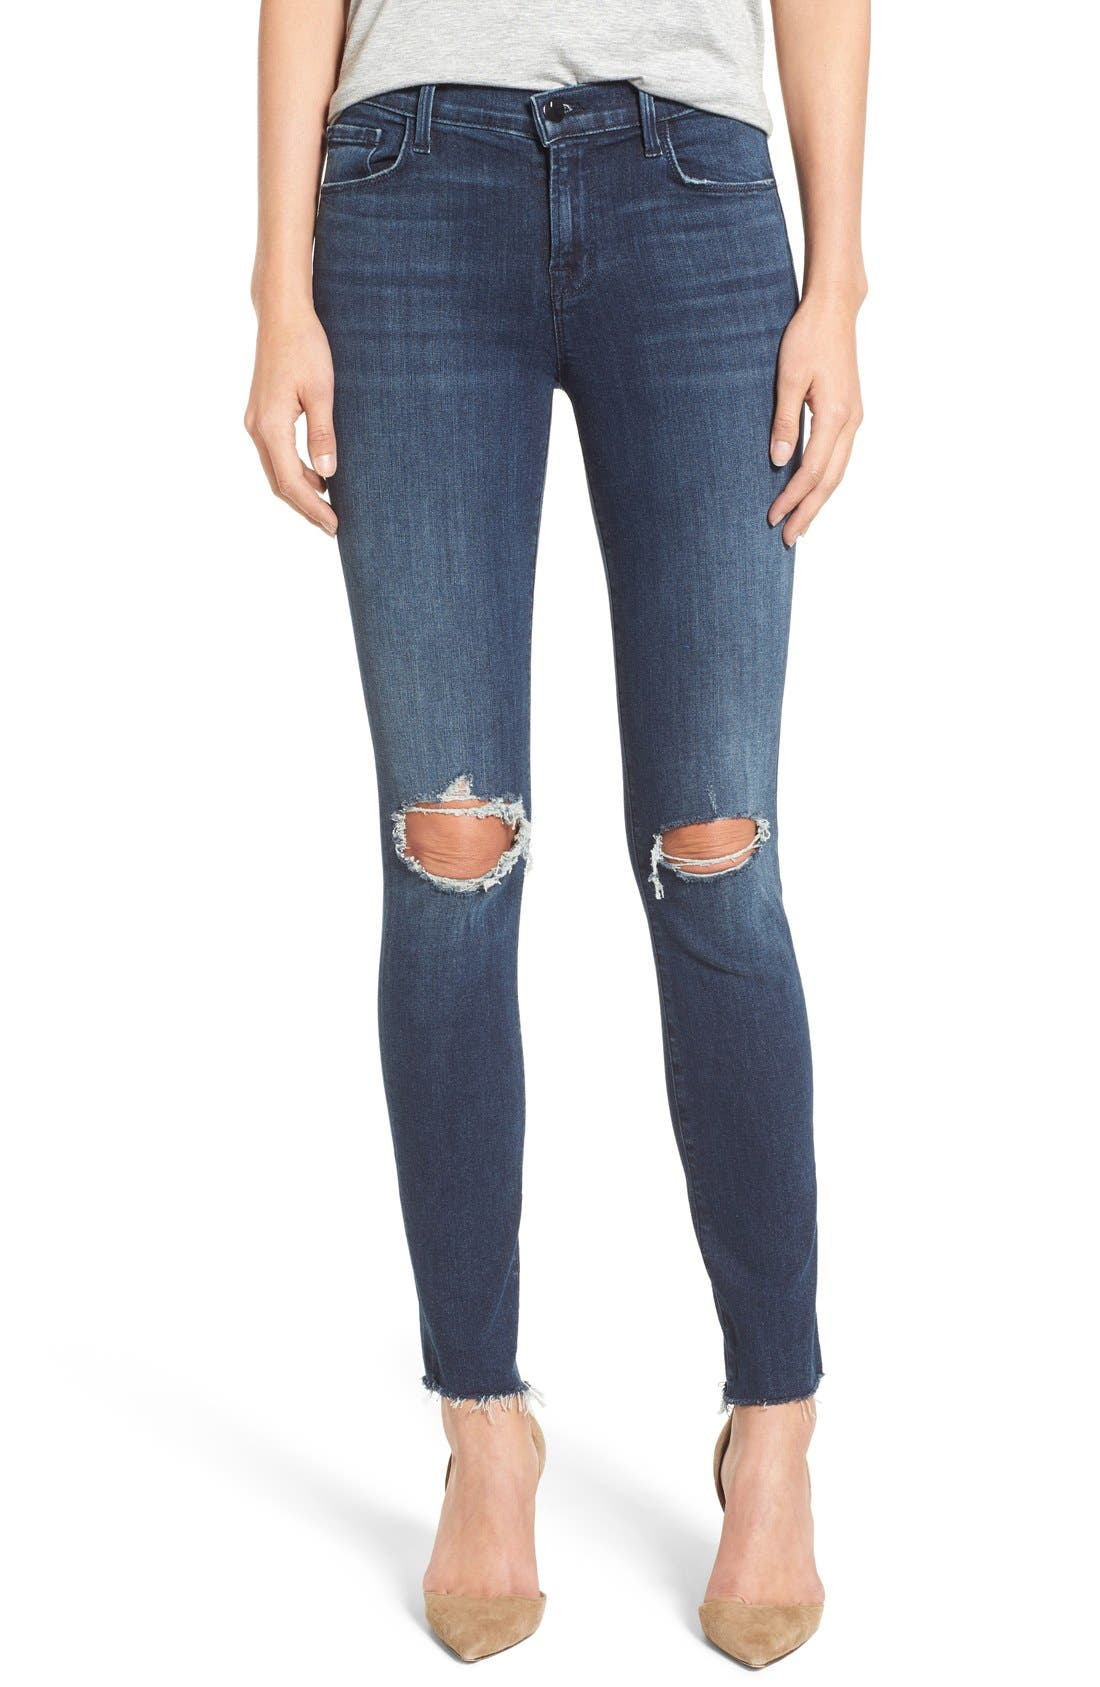 J BRAND, '811' Ankle Skinny Jeans, Main thumbnail 1, color, 401